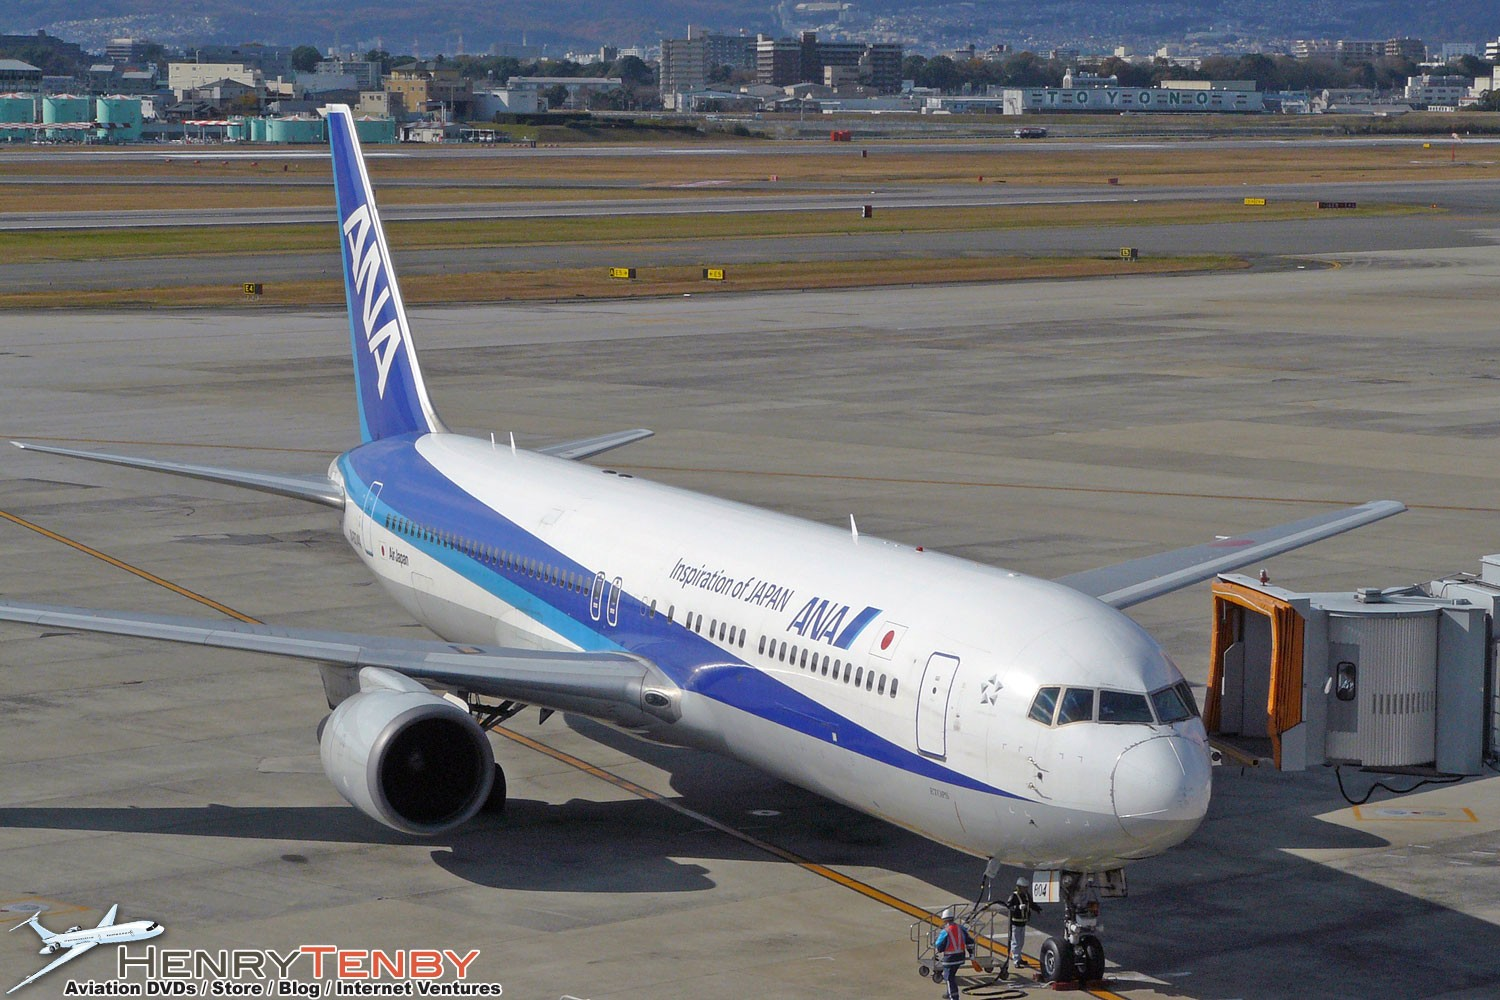 Osaka Itami airport spotting report by Henry Tenby